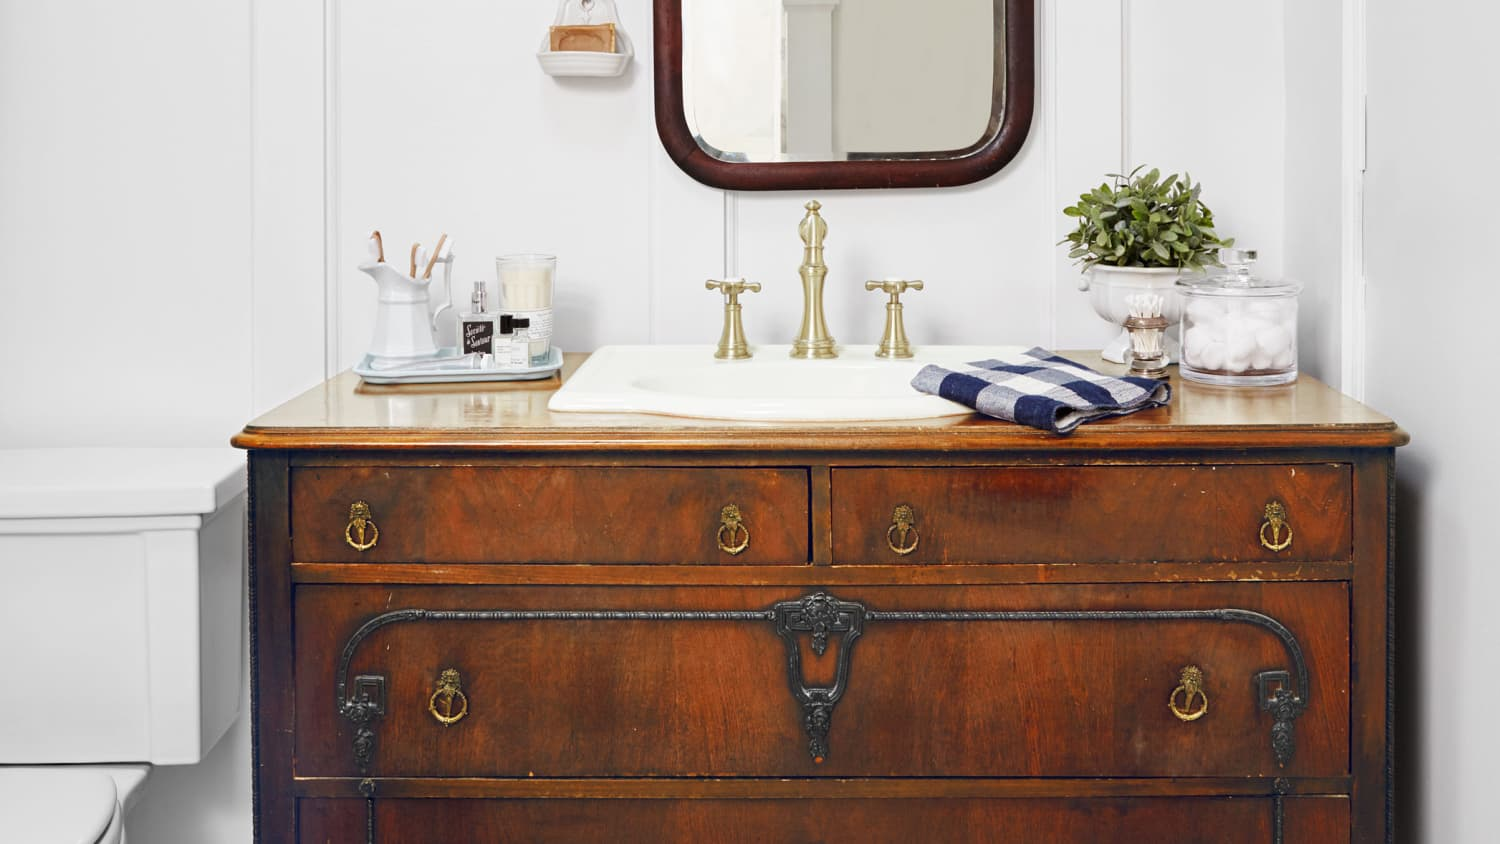 7 Ways To Repurpose A Vintage Dresser And Gain More Storage In Every Room Apartment Therapy